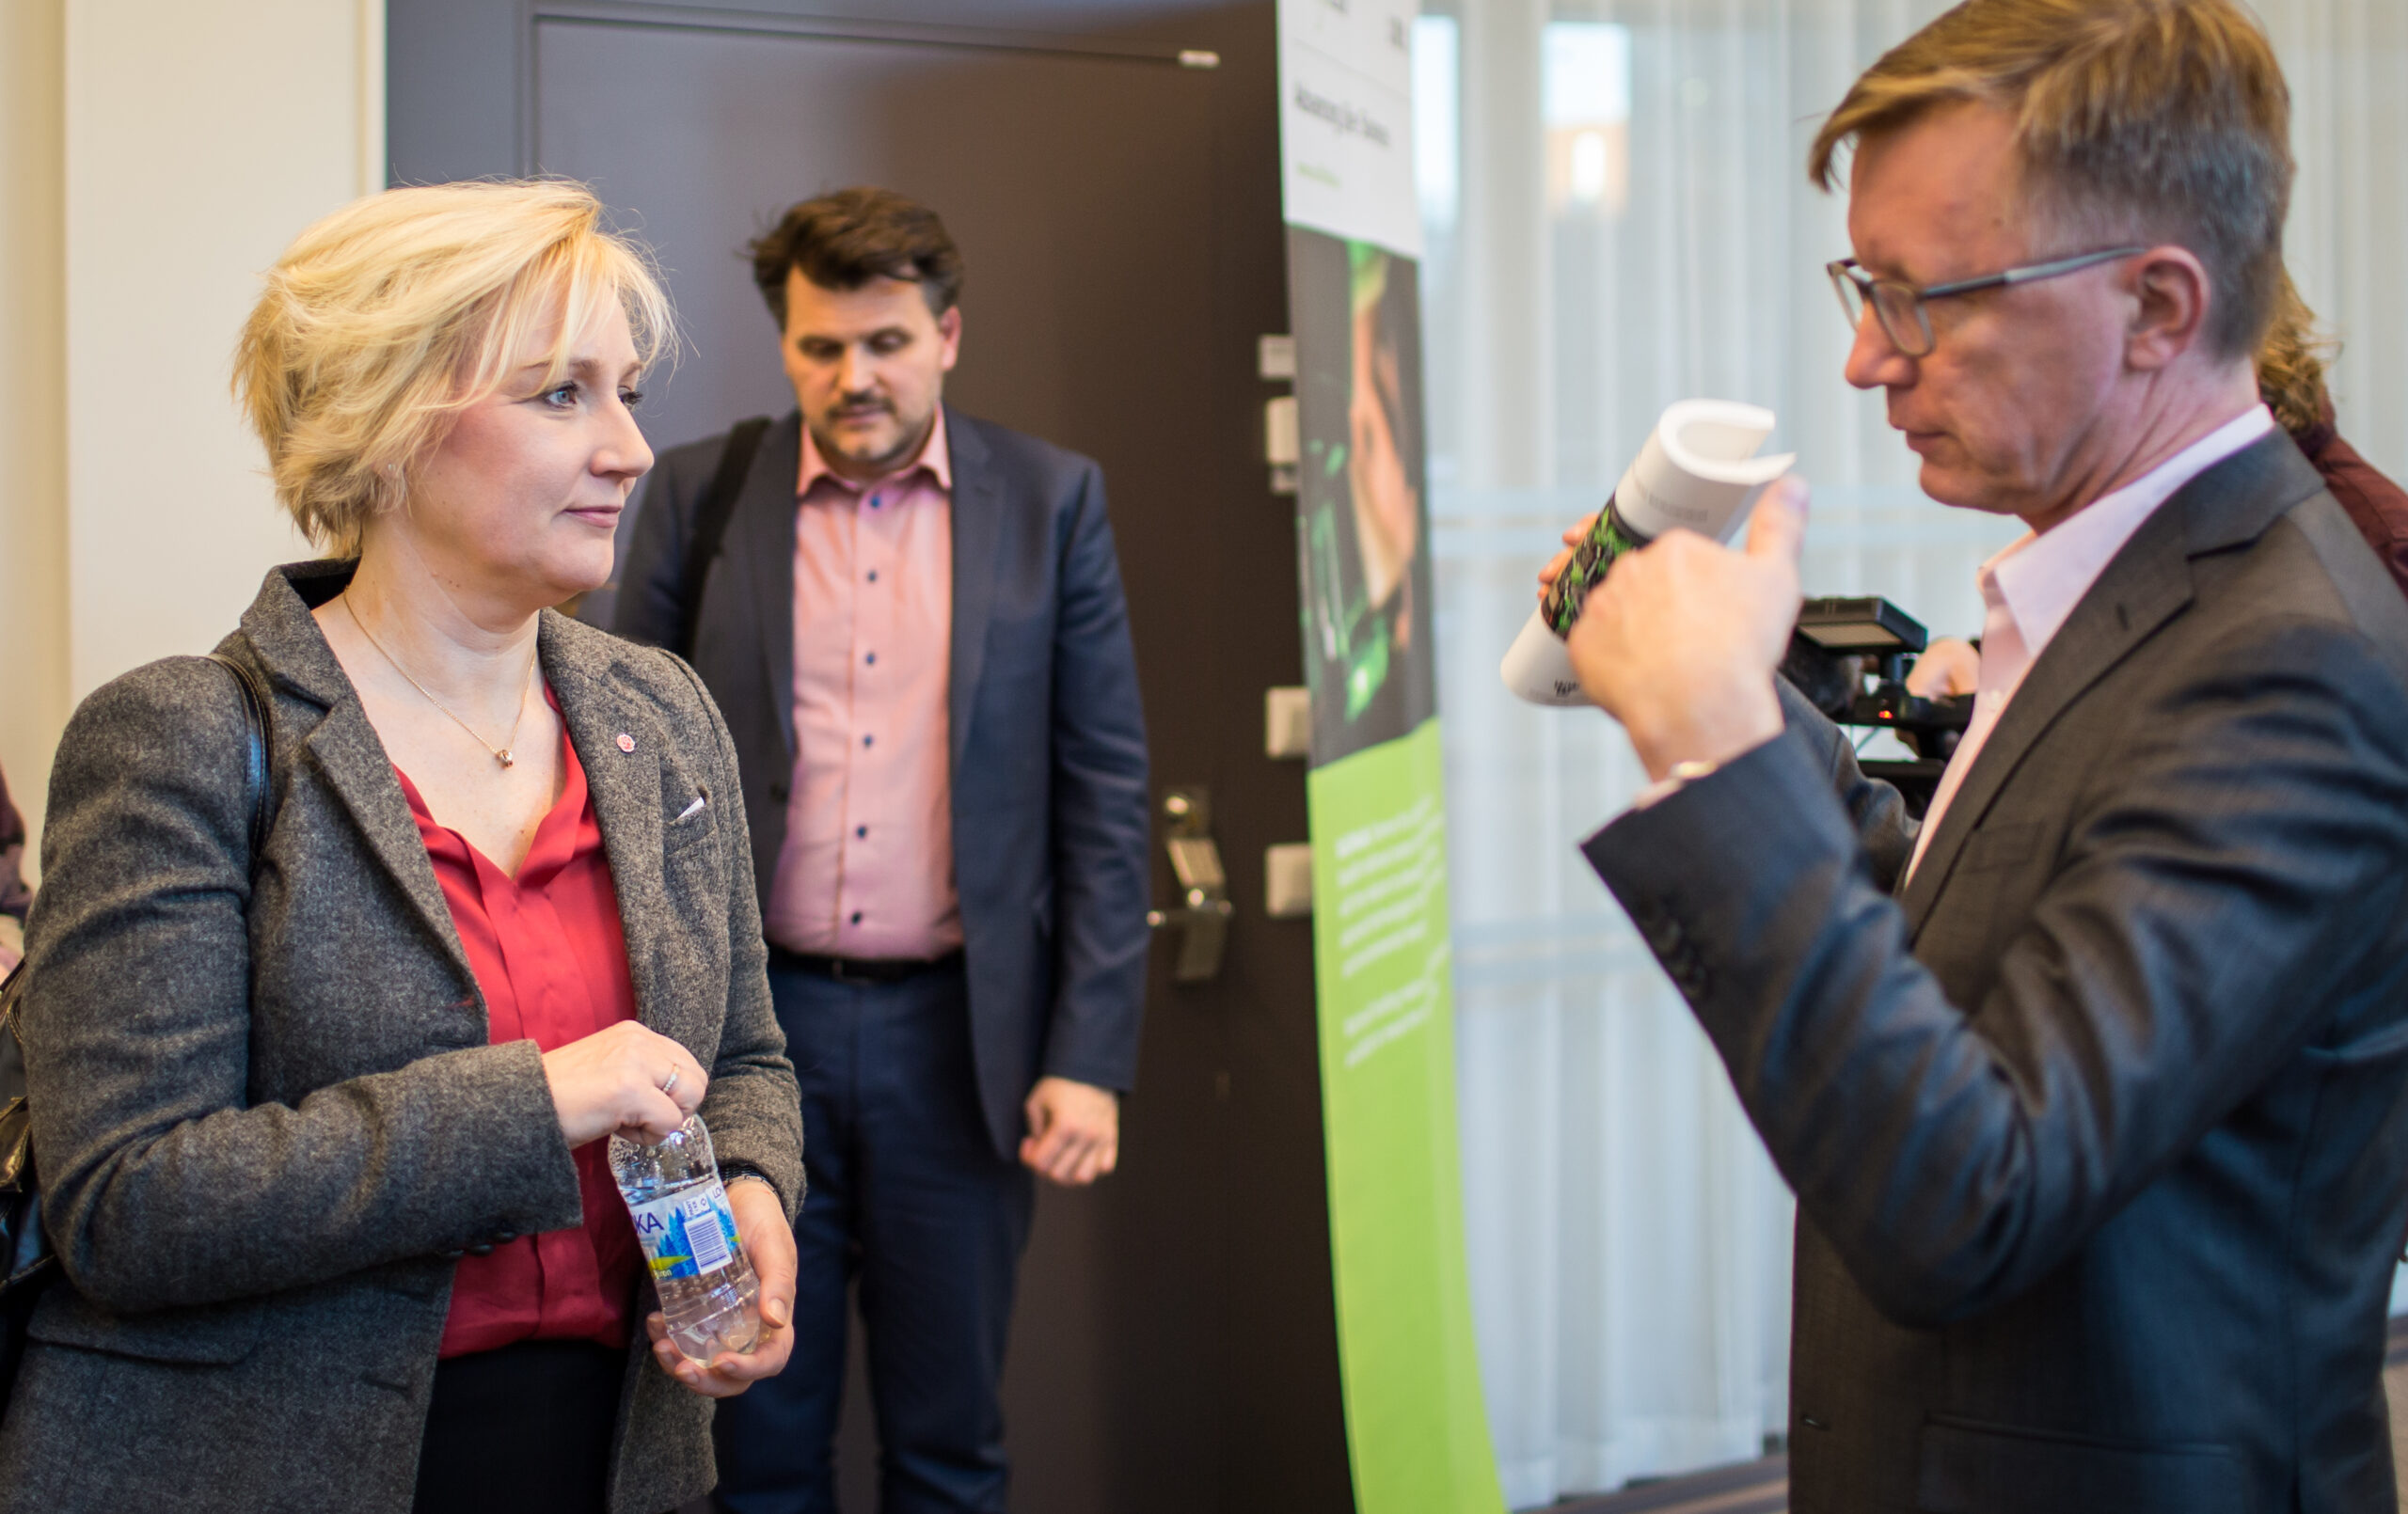 The Minister for Higher Education and Research in discussion with SciLifeLab Director Olli Kallioniemi.